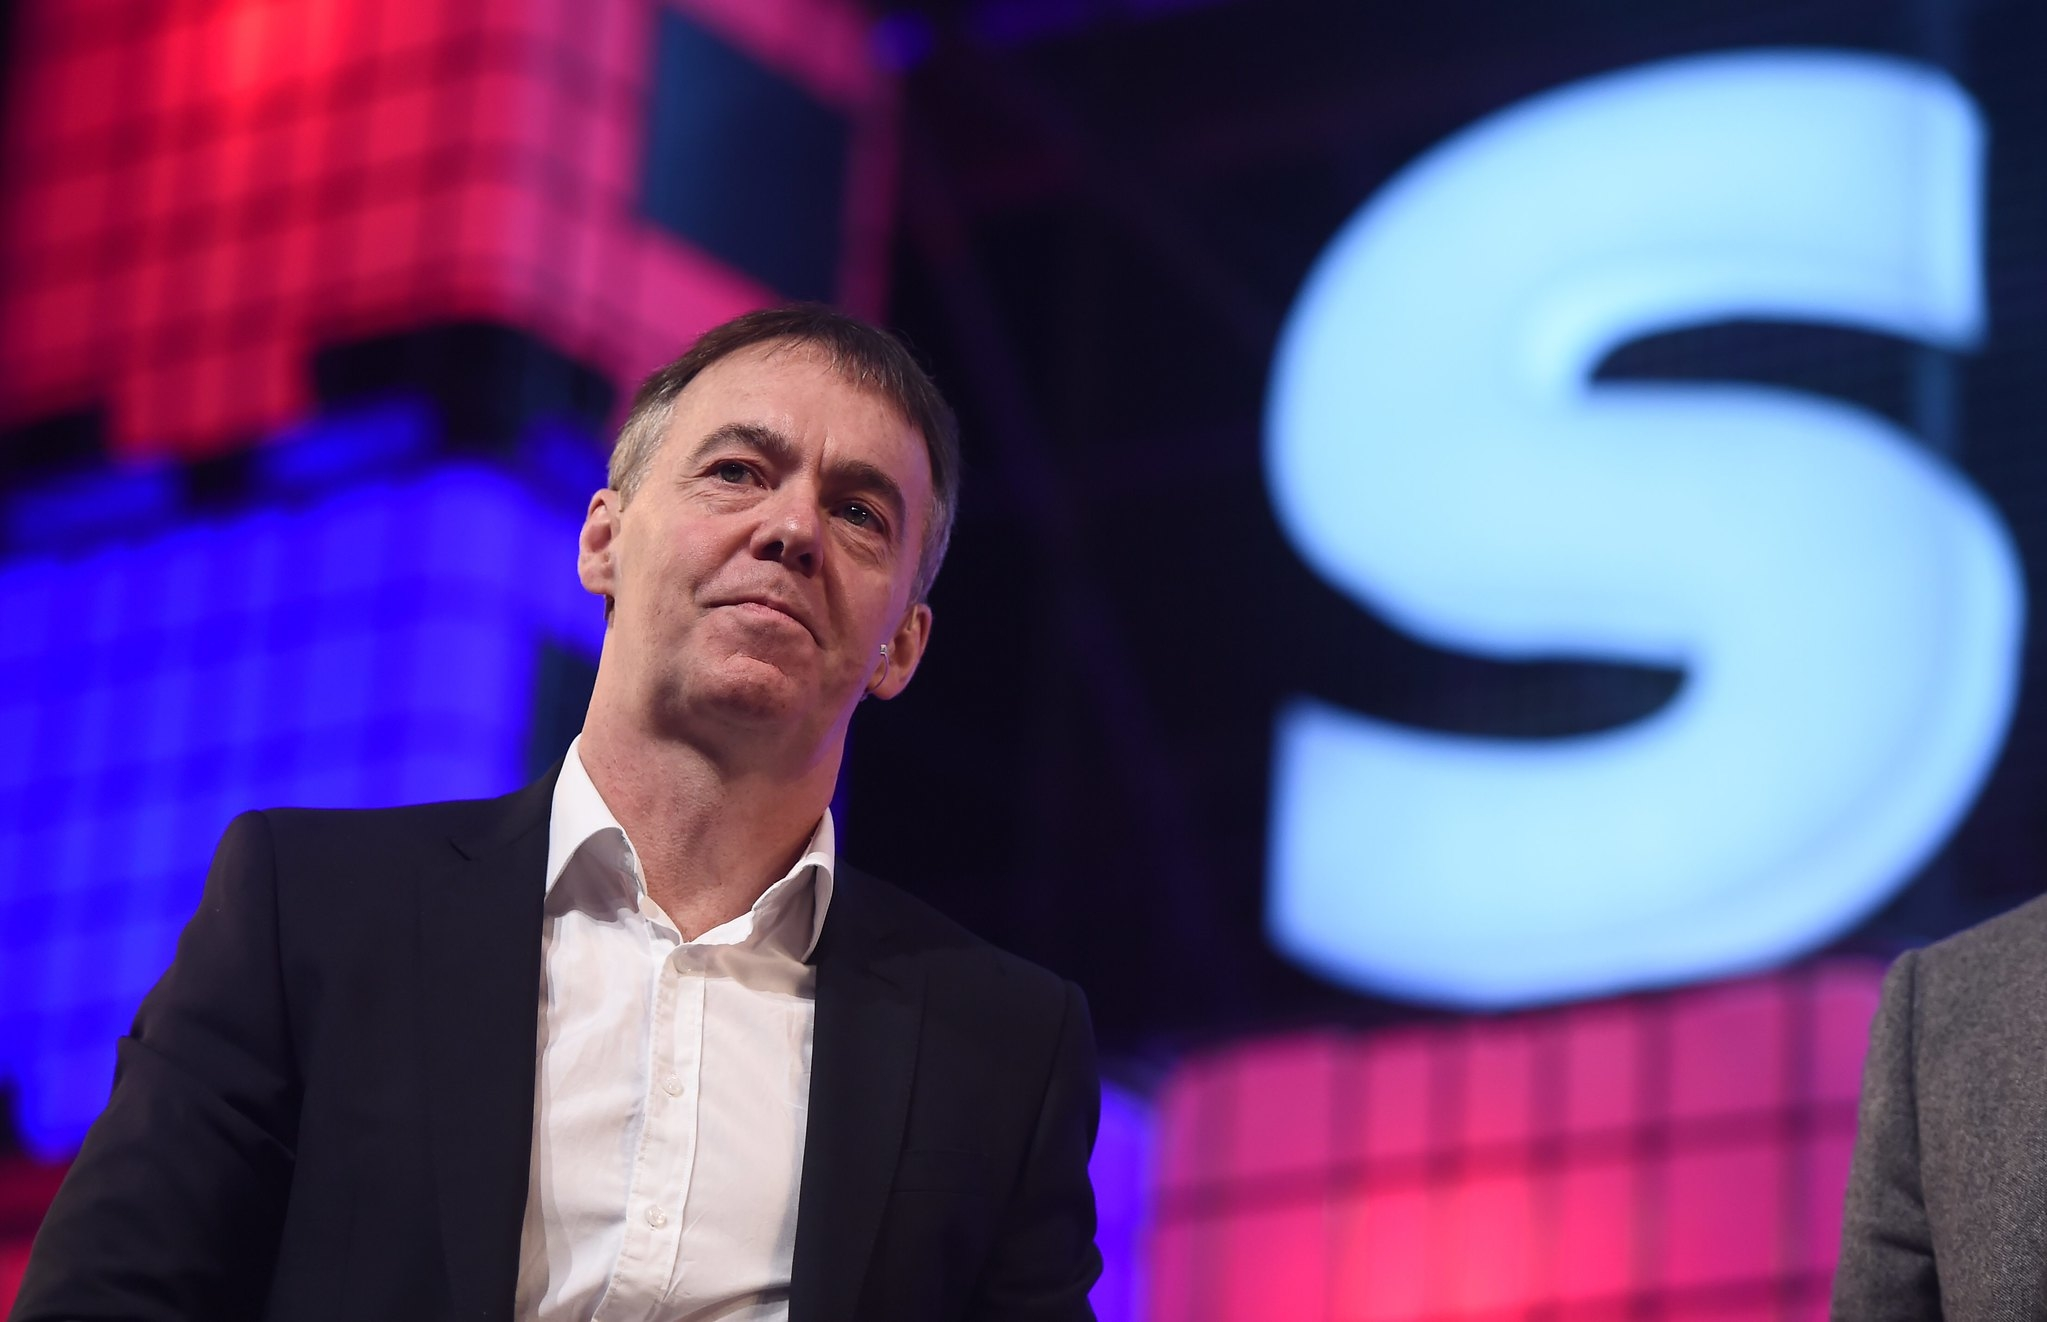 5 November 2015; Jeremy Darroch, CEO, Sky, on the Centre Stage during Day 3 of the 2015 Web Summit in the RDS, Dublin, Ireland. Picture credit: Stephen McCarthy / SPORTSFILE / Web Summit